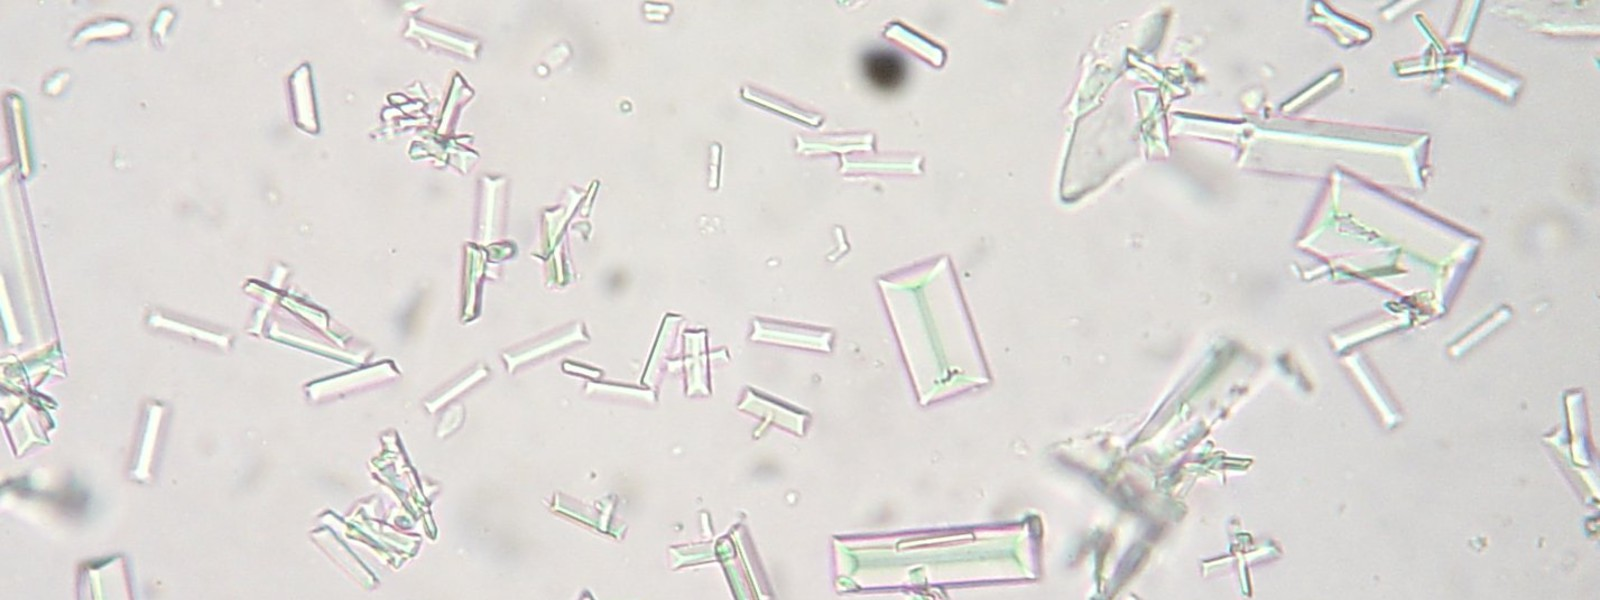 Struvite Crystals in Urine